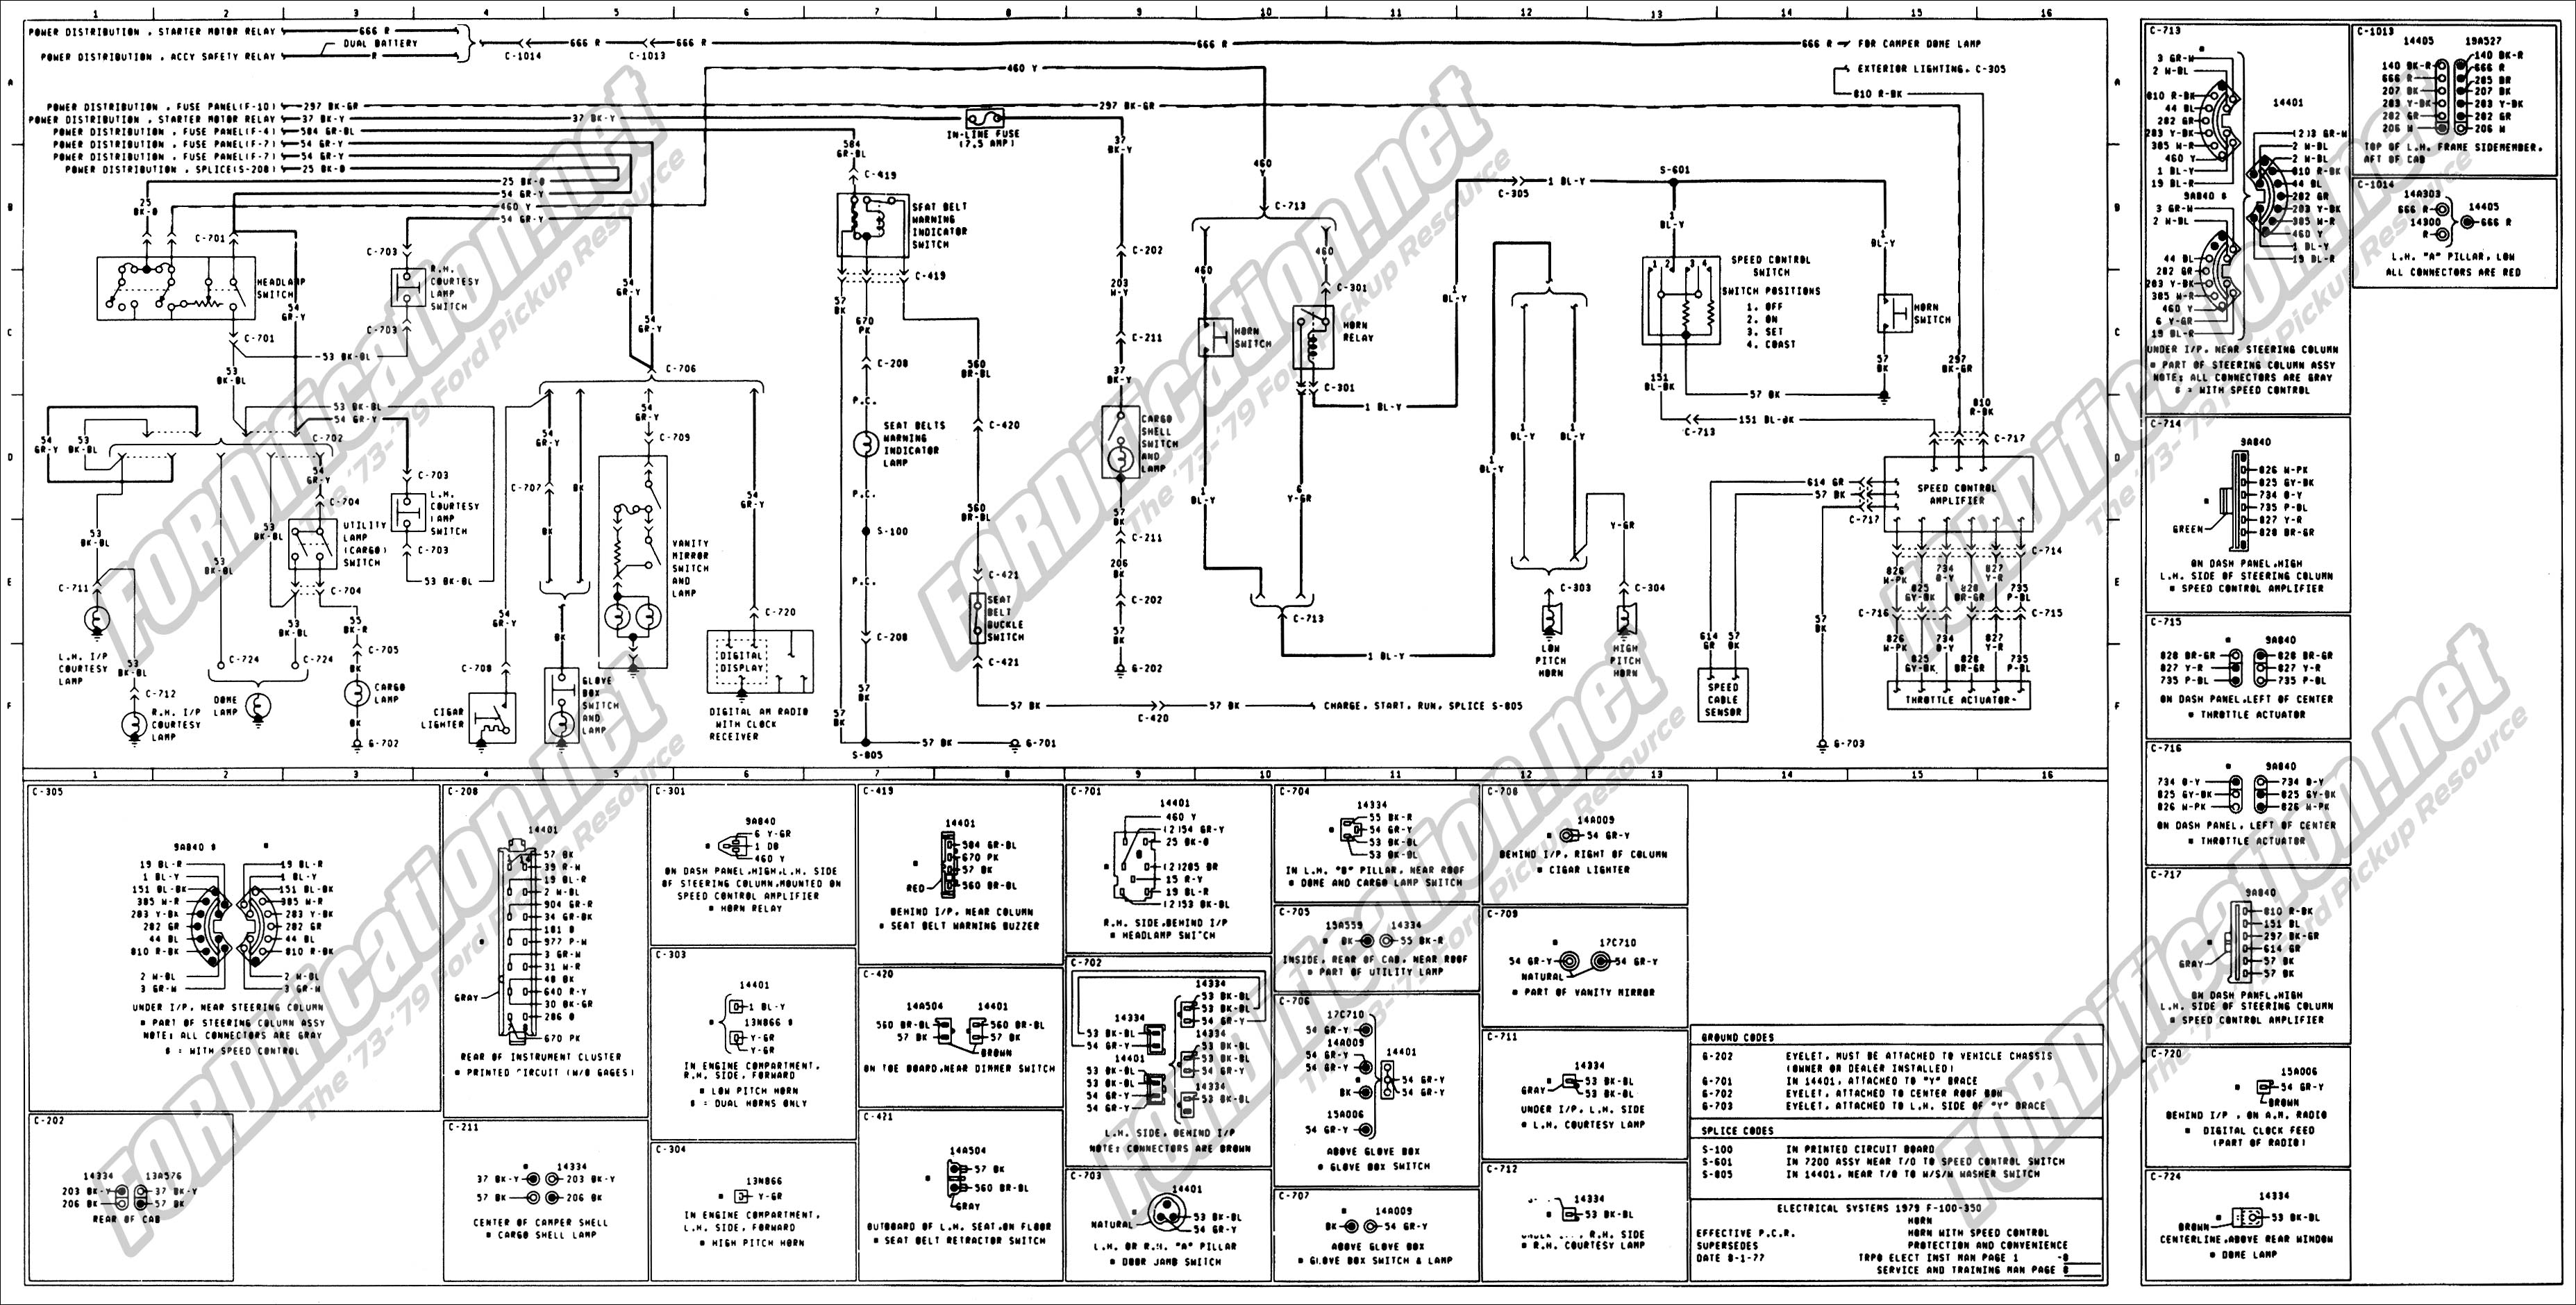 DIAGRAM] Diagram 1979 Ford F 250 Wiring Harness FULL Version HD Quality Wiring  Harness - WIRINGNOTES.RAPFRANCE.FRDatabase Design Tool